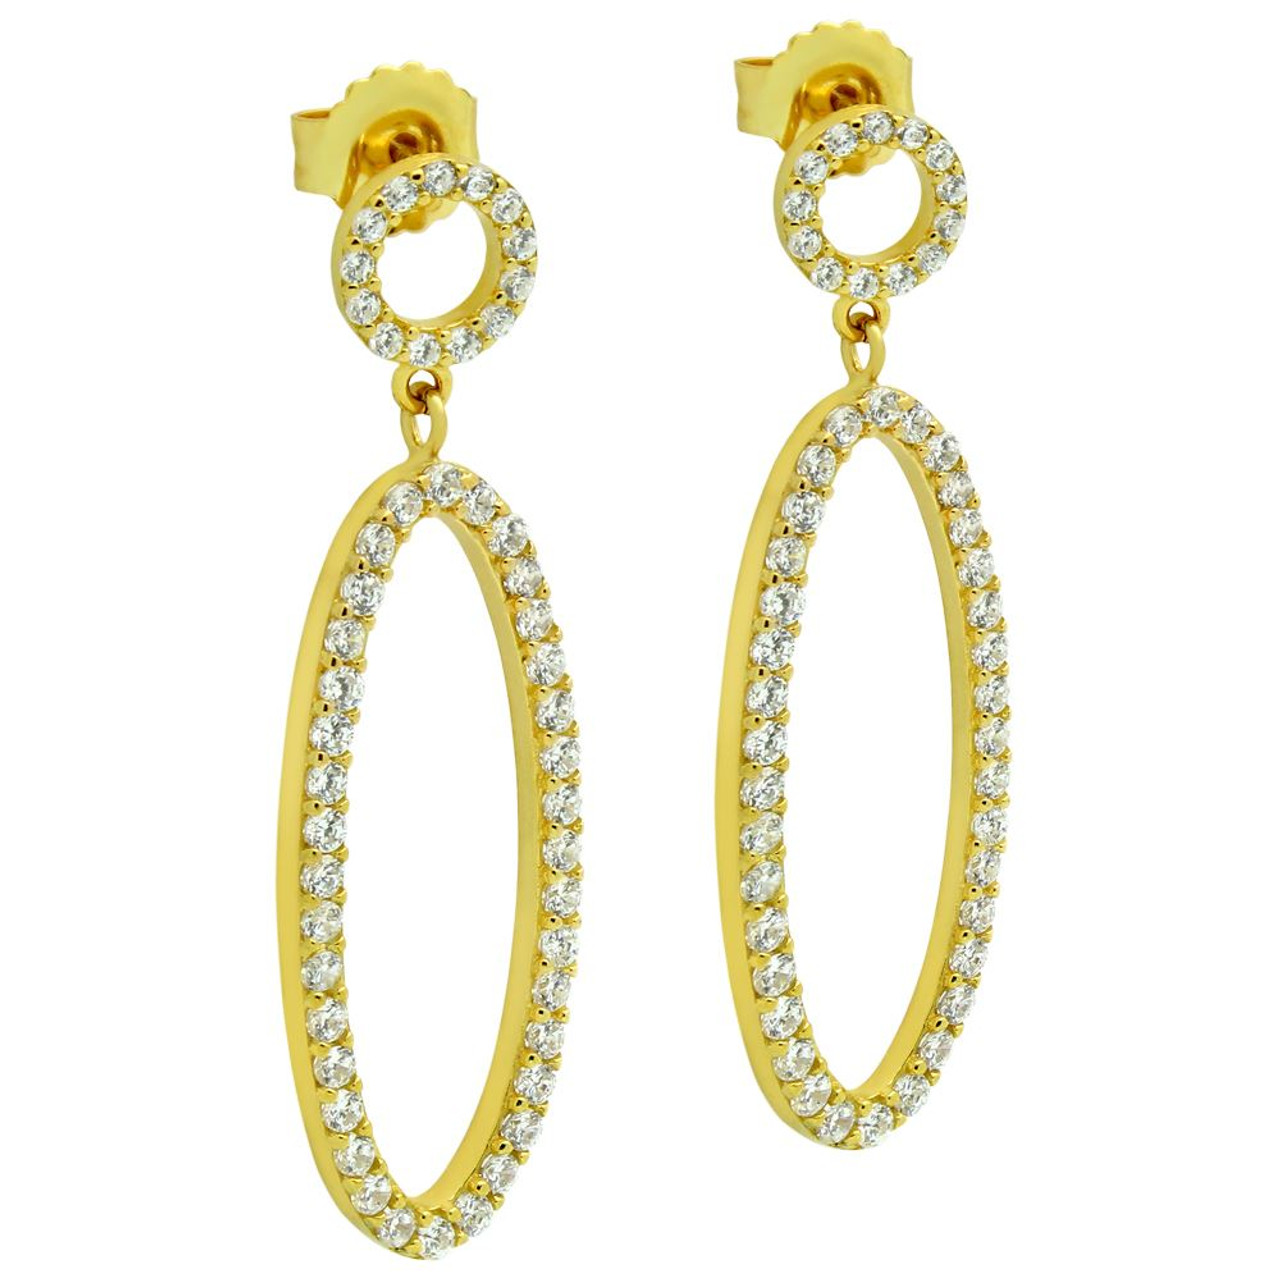 featuring diamonds graff earrings oval pair diamond a classic shape of collections with swan hooks pave cut